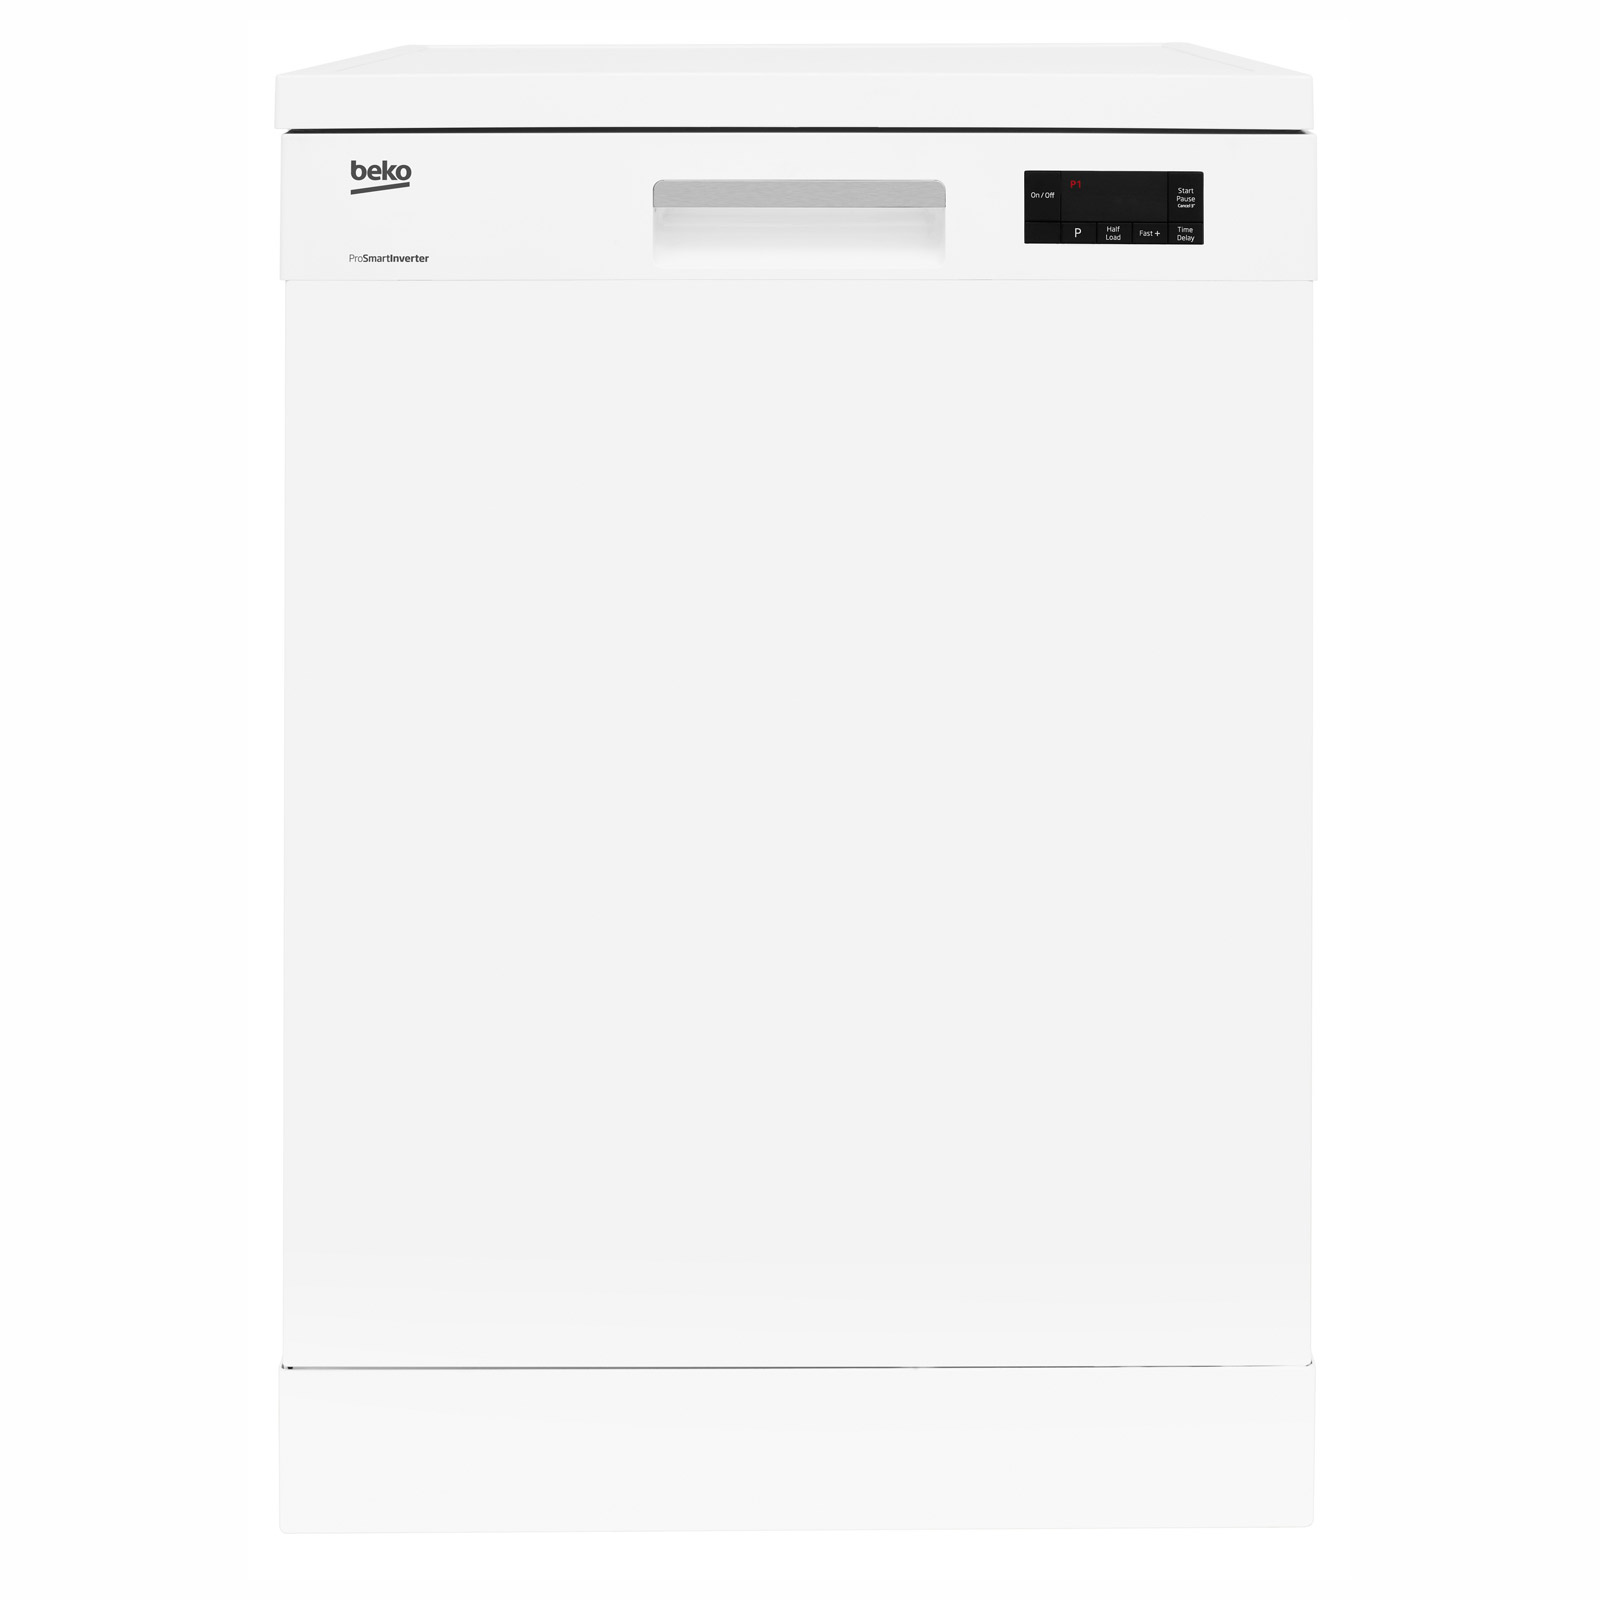 fd626a26c83 Beko DFN16420W 60cm Dishwasher in White, 14 Place Setting A++ Rated